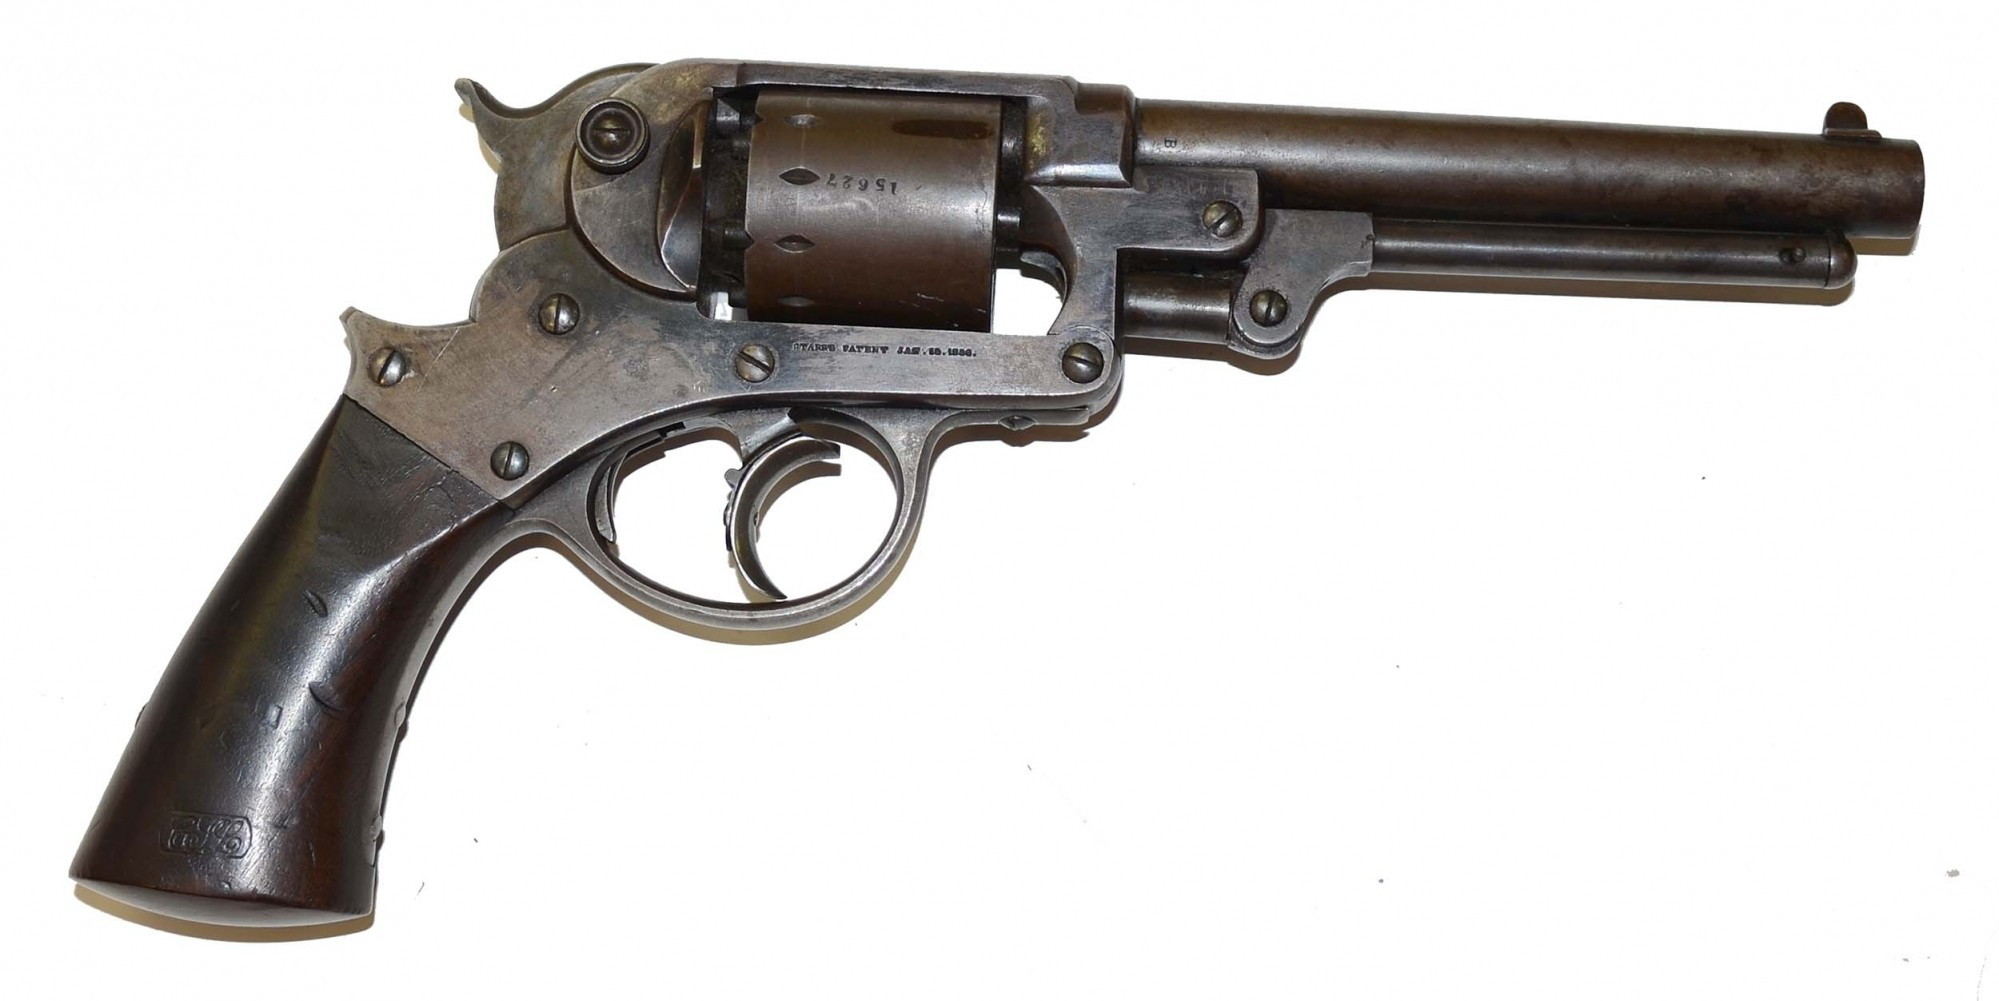 ORIGINAL STARR ARMS CO. DOUBLE ACTION MODEL 1858 PERCUSSION ARMY REVOLVER